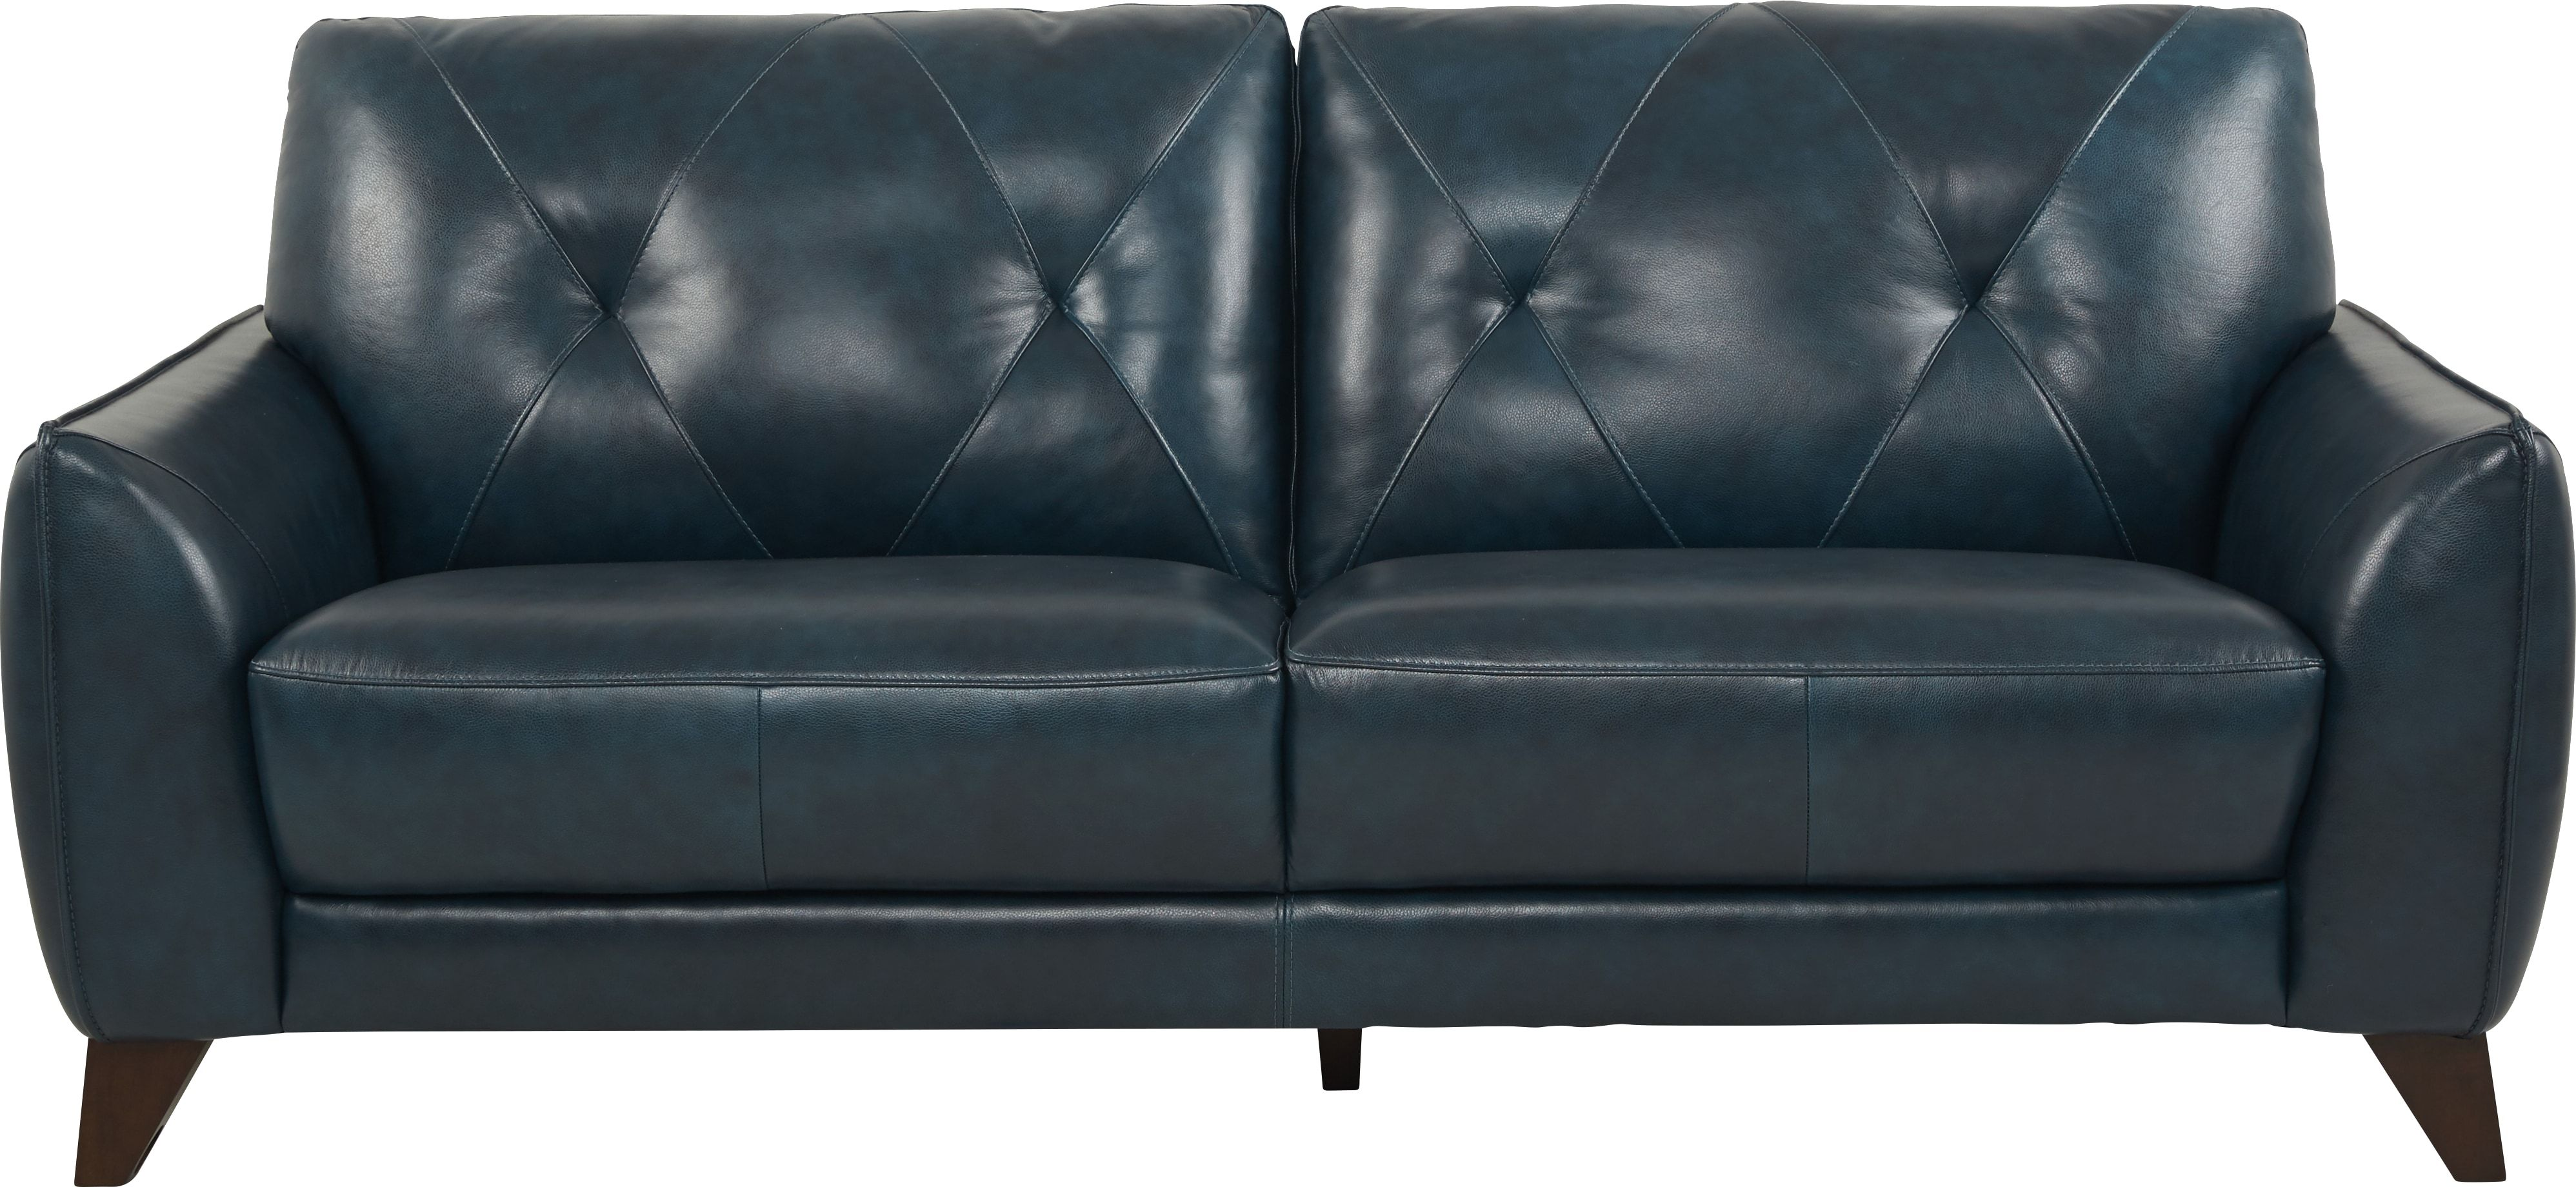 Salviano Blue Leather Sofa in 2019 | Blue leather sofa, Best ...